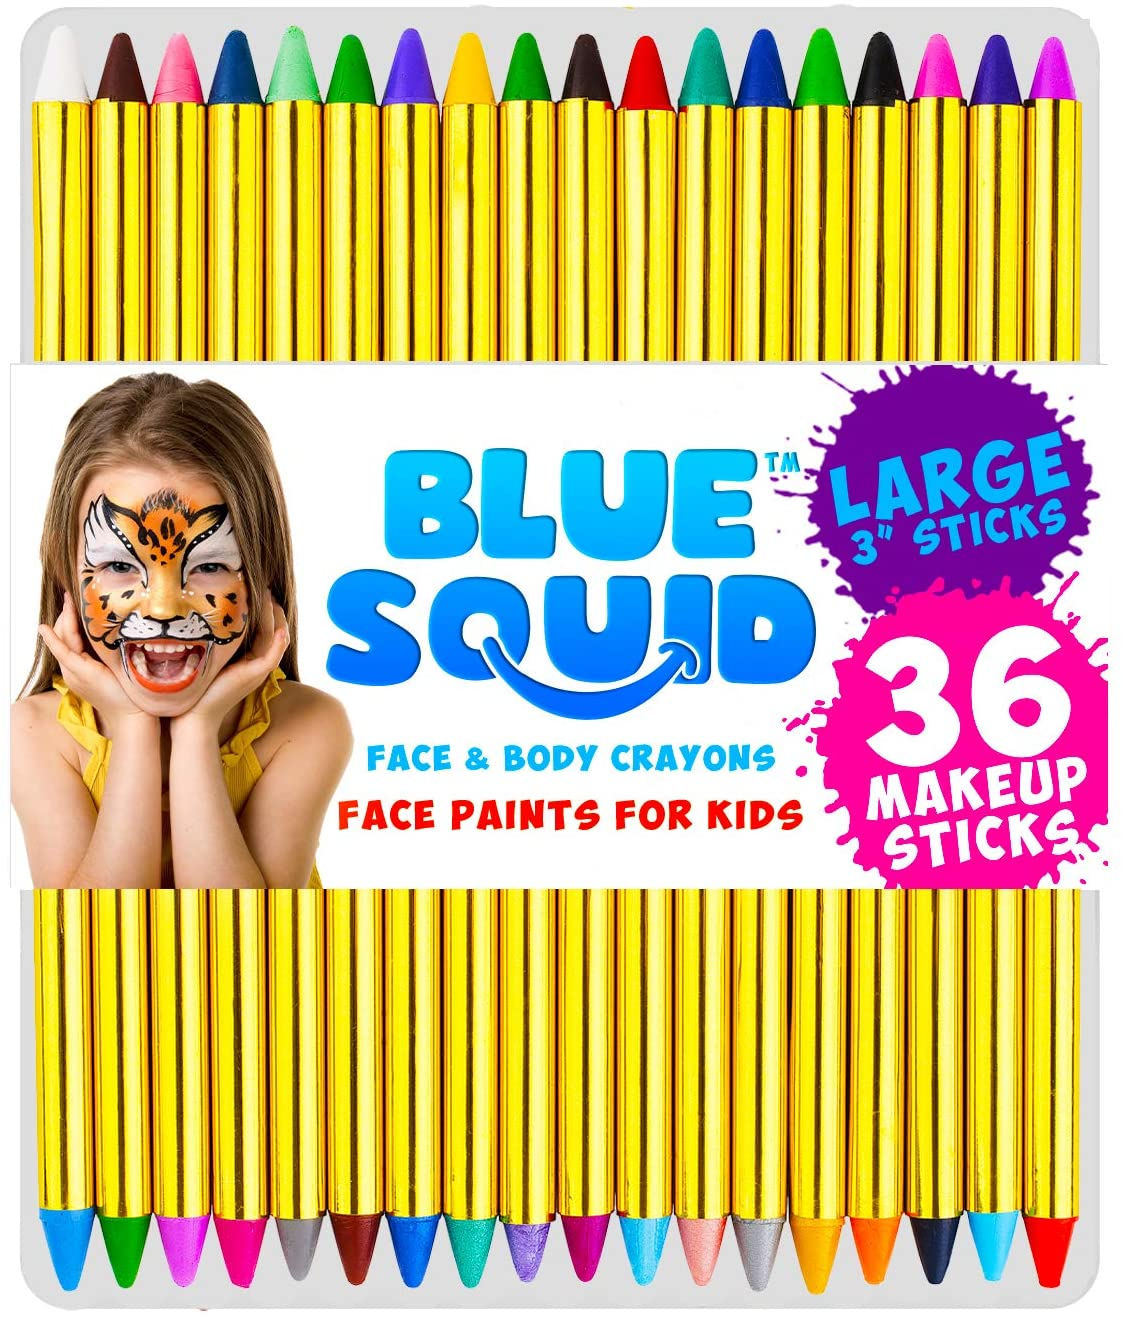 Face Paint Crayons for Kids